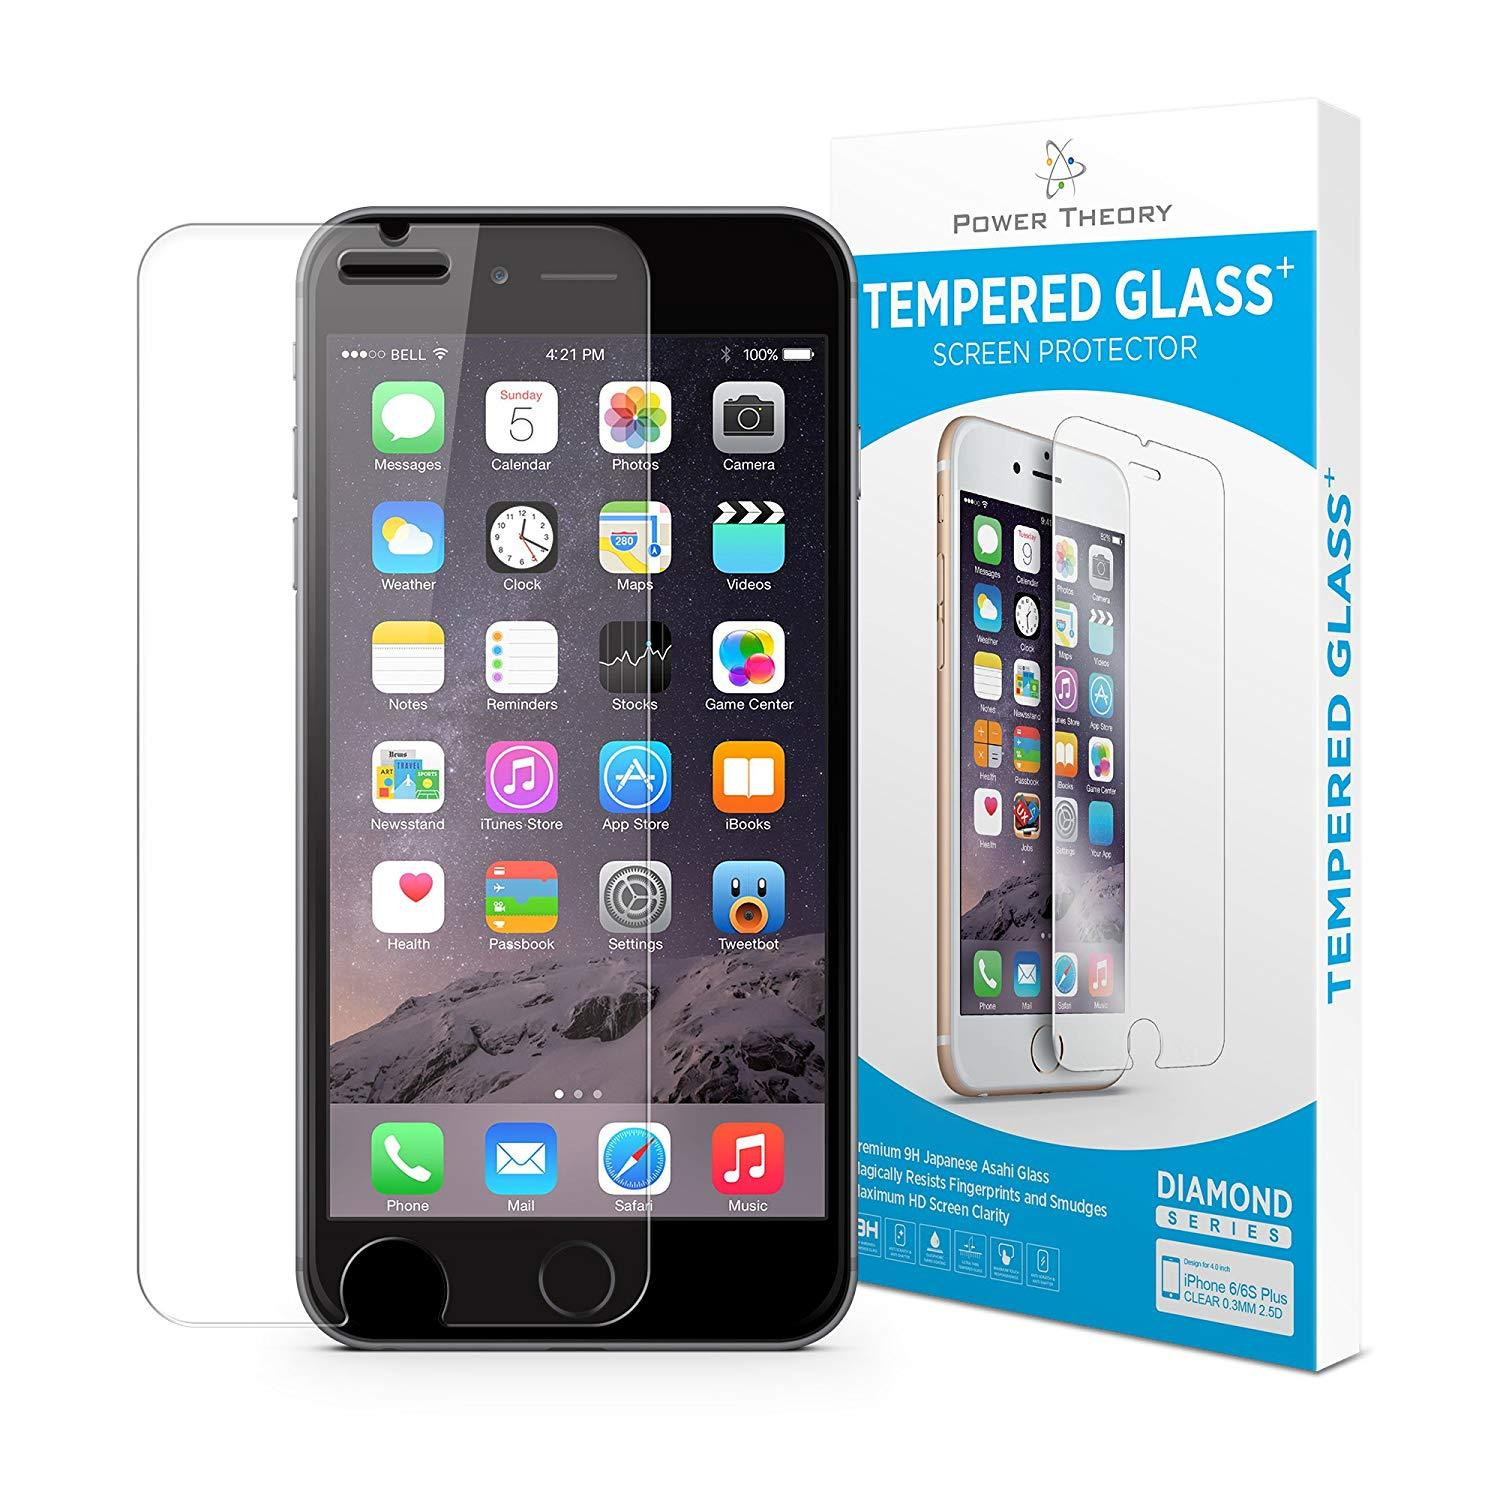 Power Theory iPhone 6s Plus / 6 Plus Screen Protectors [1-Pack] Premium Tempered Glass Screen Protector with Easy App Install Kit for Apple iPhone6s Plus/iPhone6 Plus